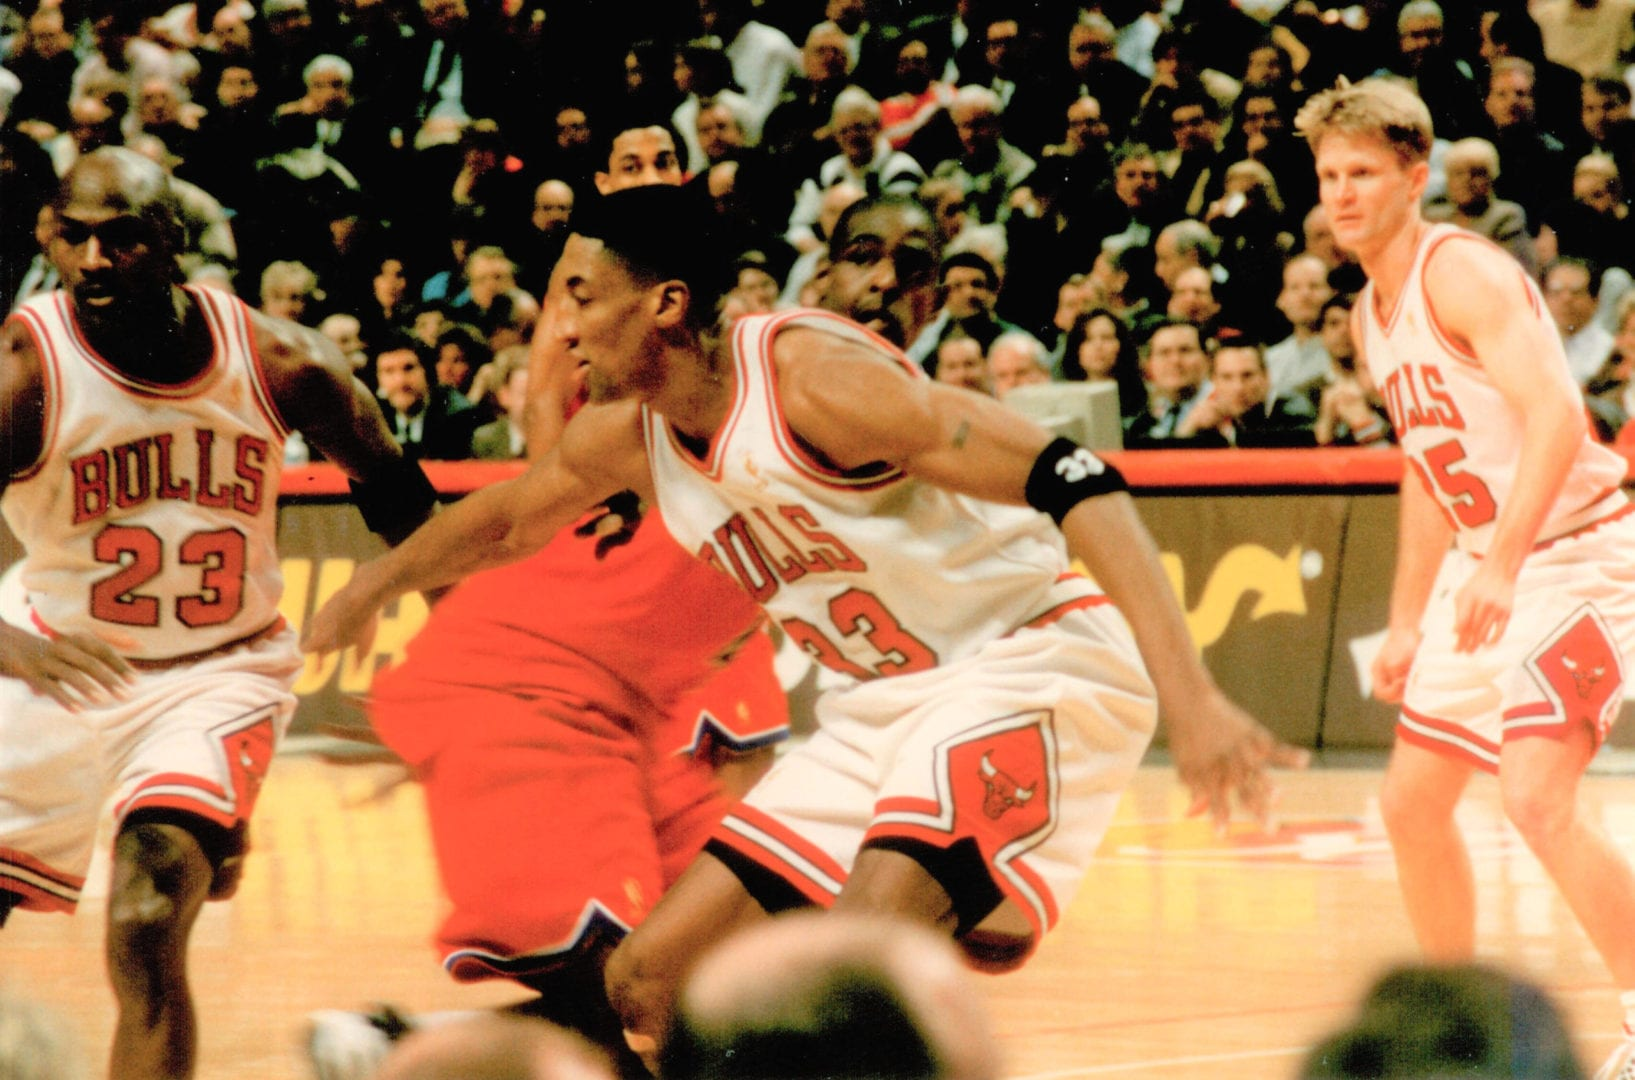 Jordan, Pippen, and Kerr going for the ball